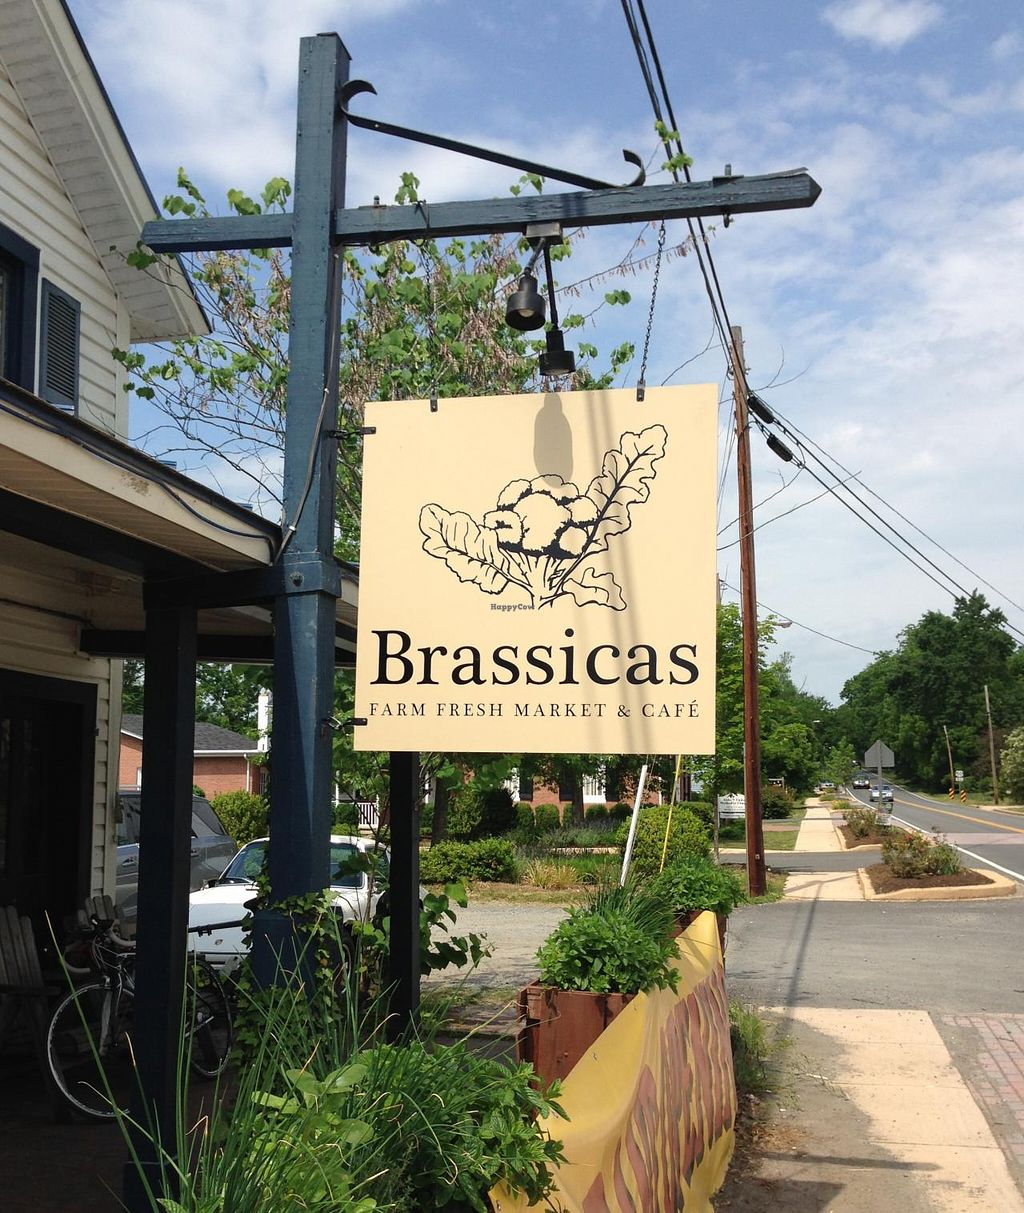 "Photo of Brassicas Farm Fresh Market and Cafe  by <a href=""/members/profile/Alysoun%20Mahoney"">Alysoun Mahoney</a> <br/>Brassicas - Aldie VA USA - Cafe Entrance <br/> June 20, 2015  - <a href='/contact/abuse/image/58951/106604'>Report</a>"